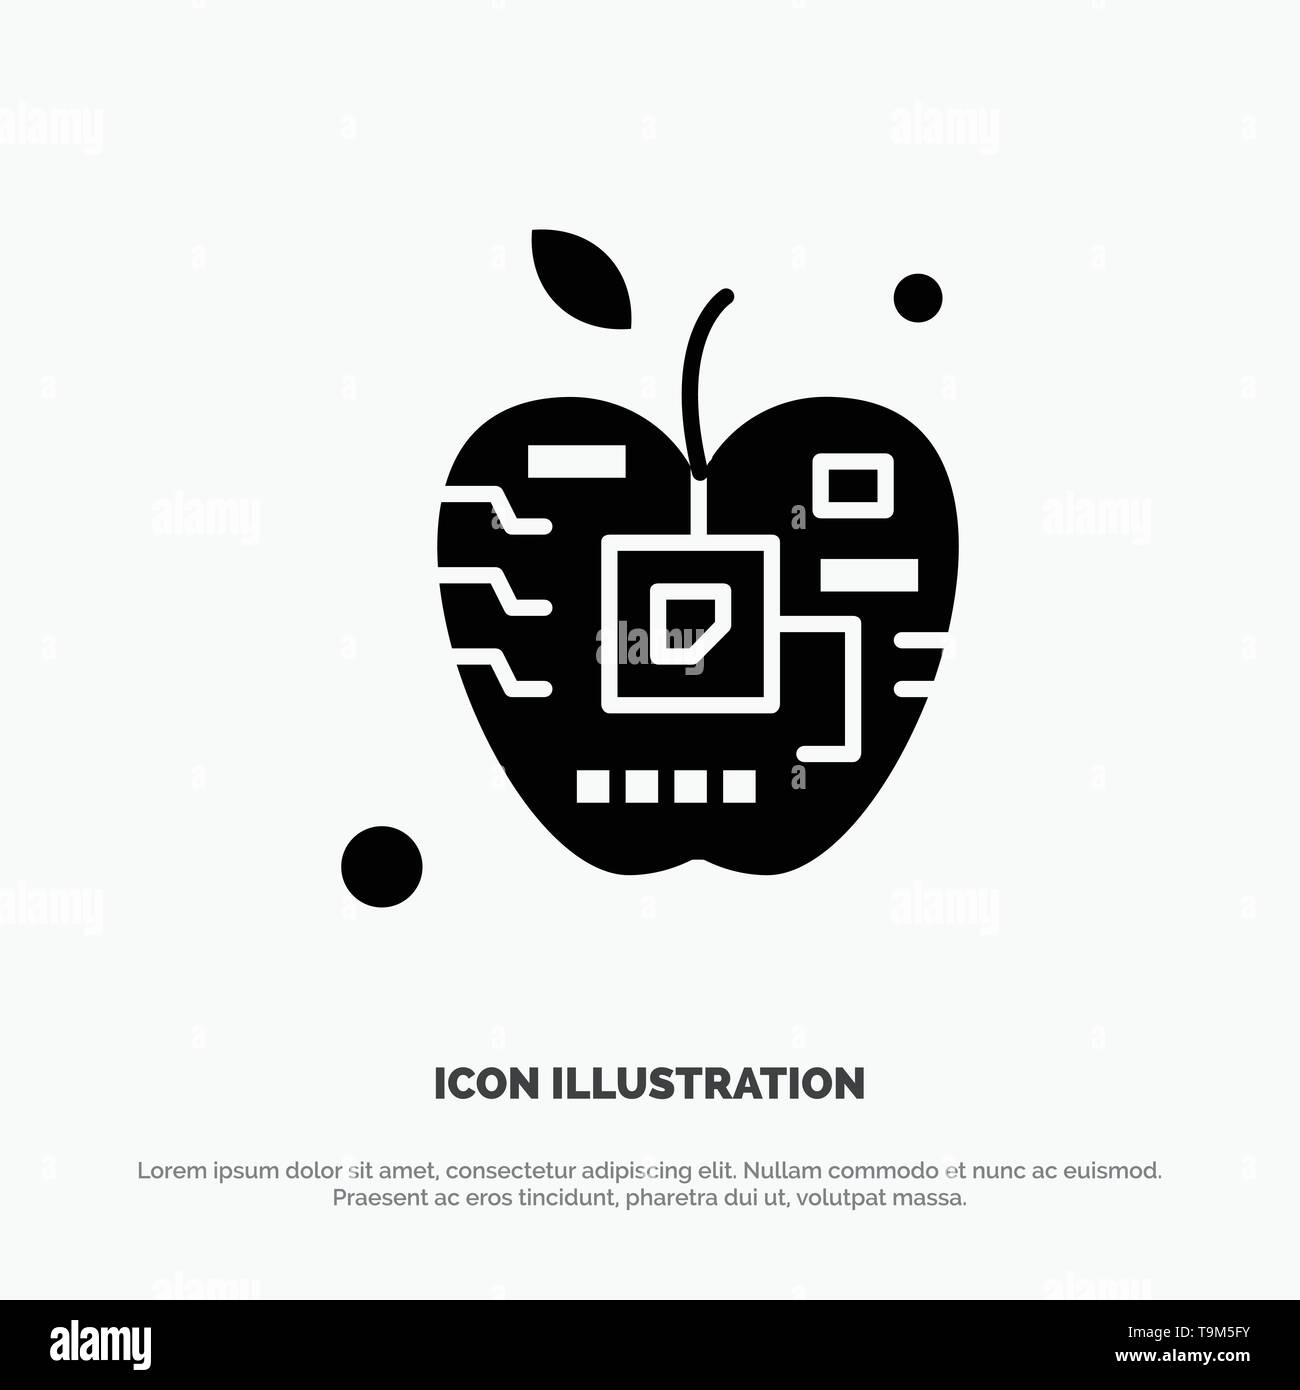 Apple, Artificial, Biology, Digital, Electronic solid Glyph Icon vector - Stock Image